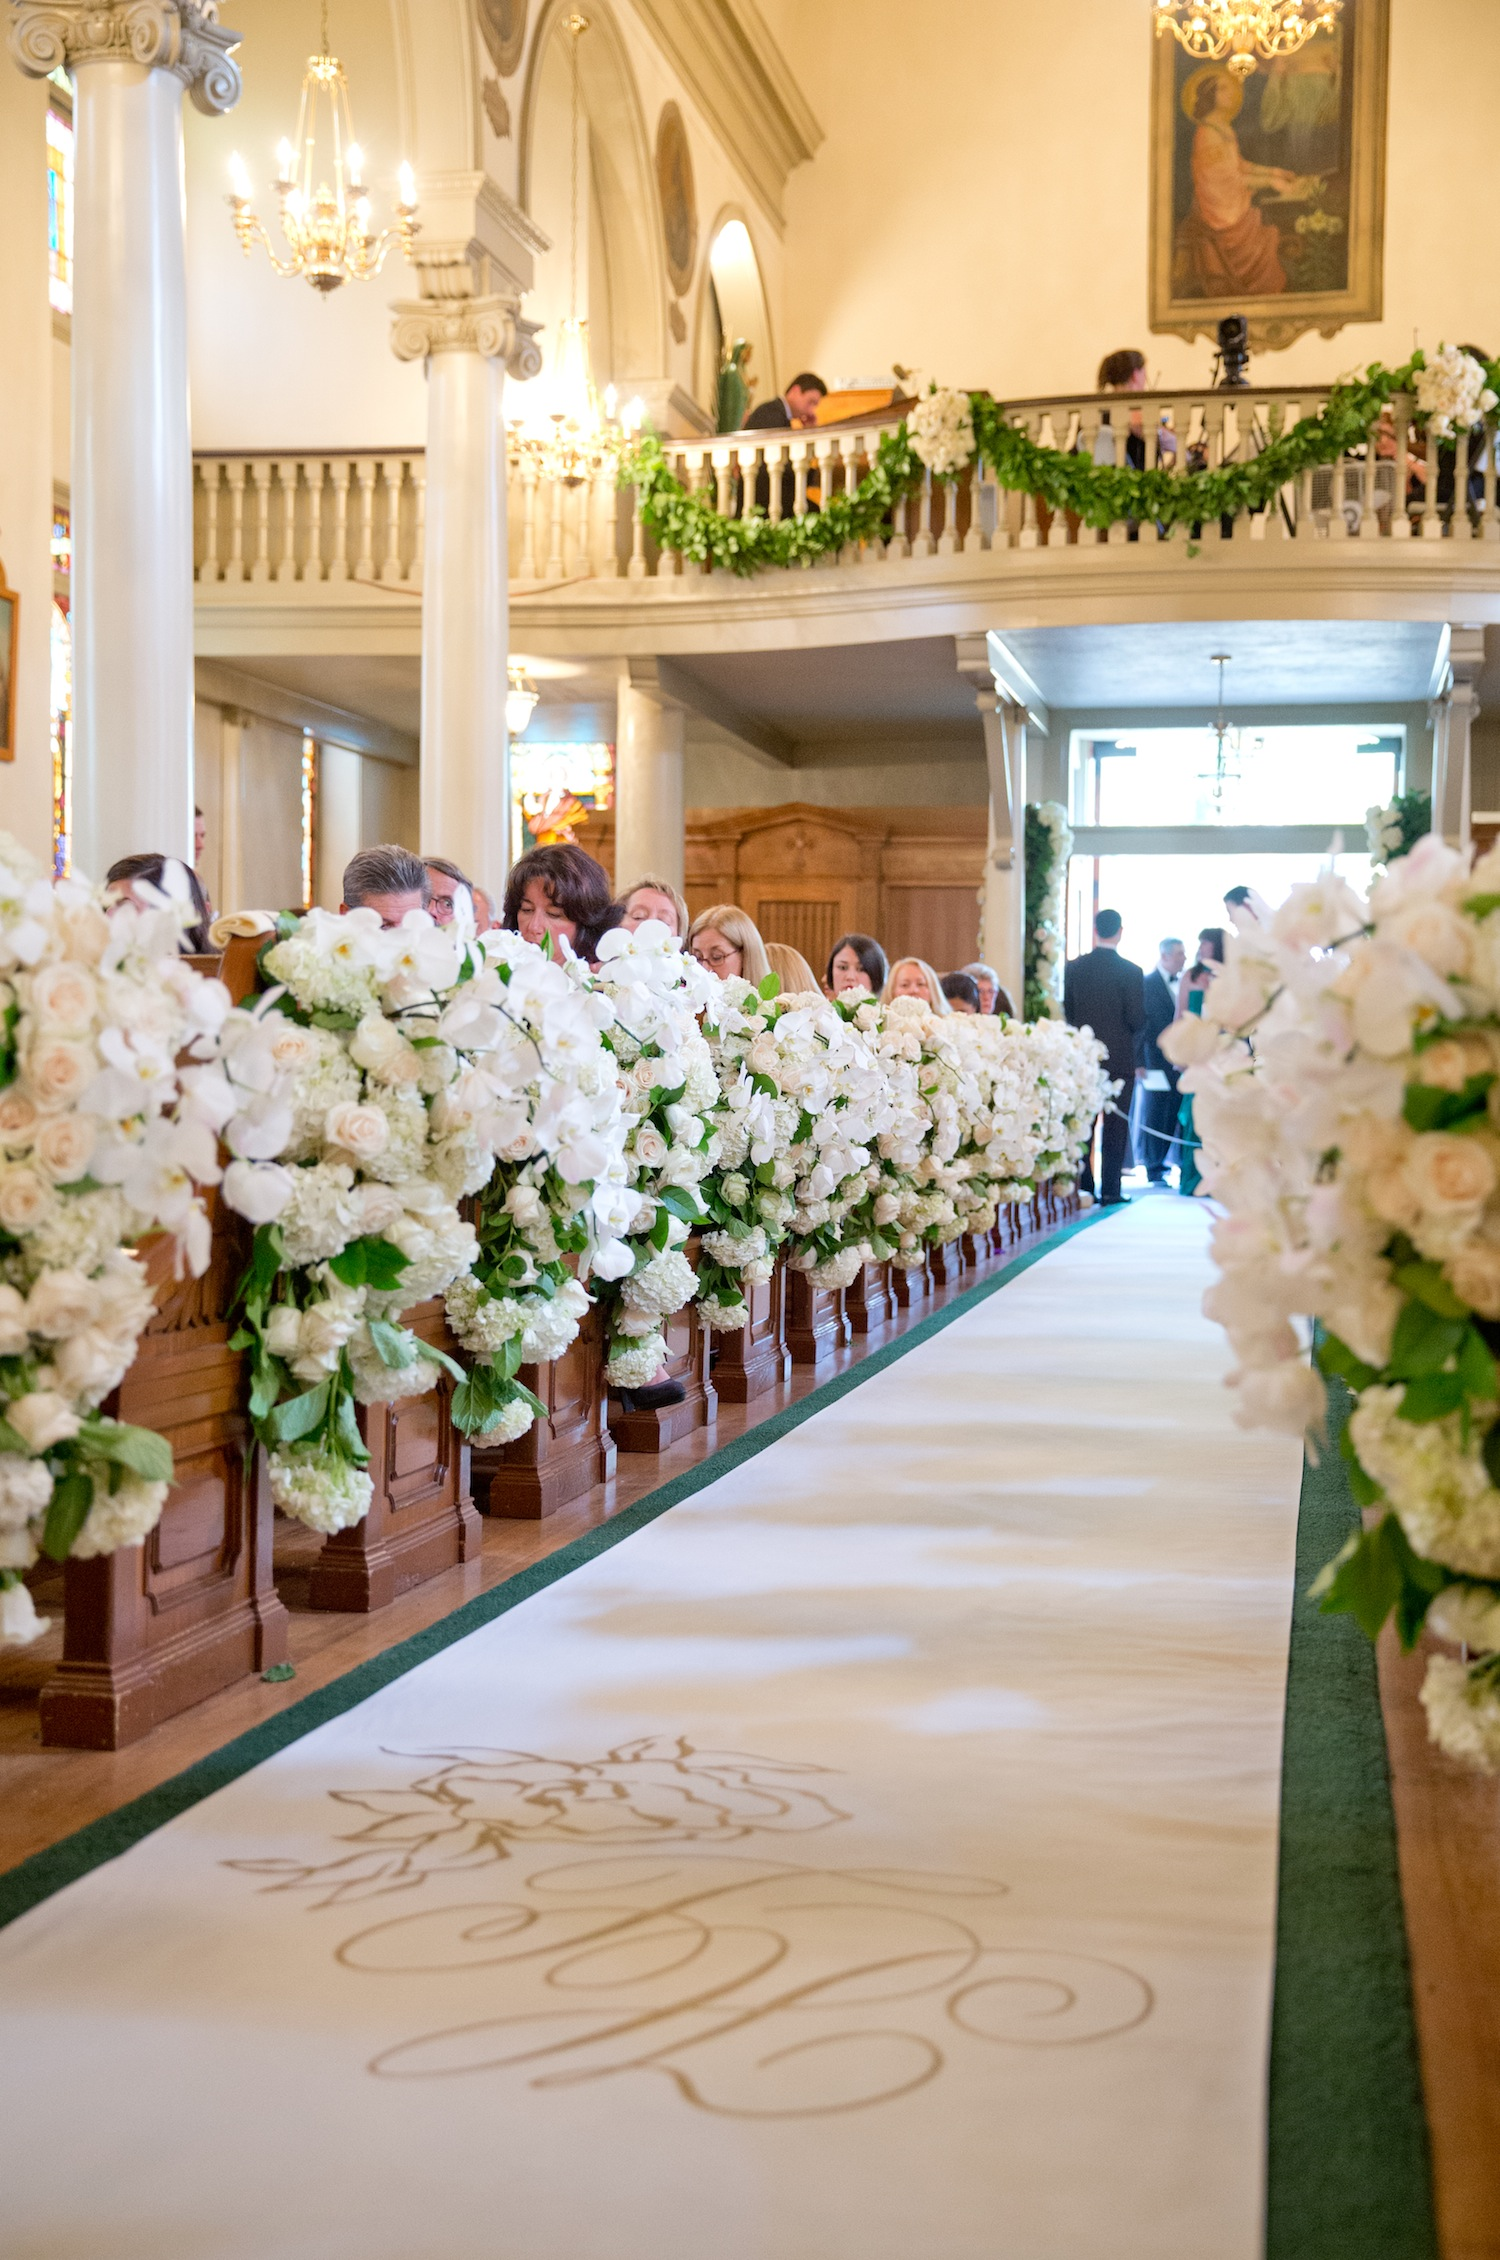 Wedding ceremony ideas 13 dcor ideas for a church wedding inside custom aisle runner and flowers at church wedding junglespirit